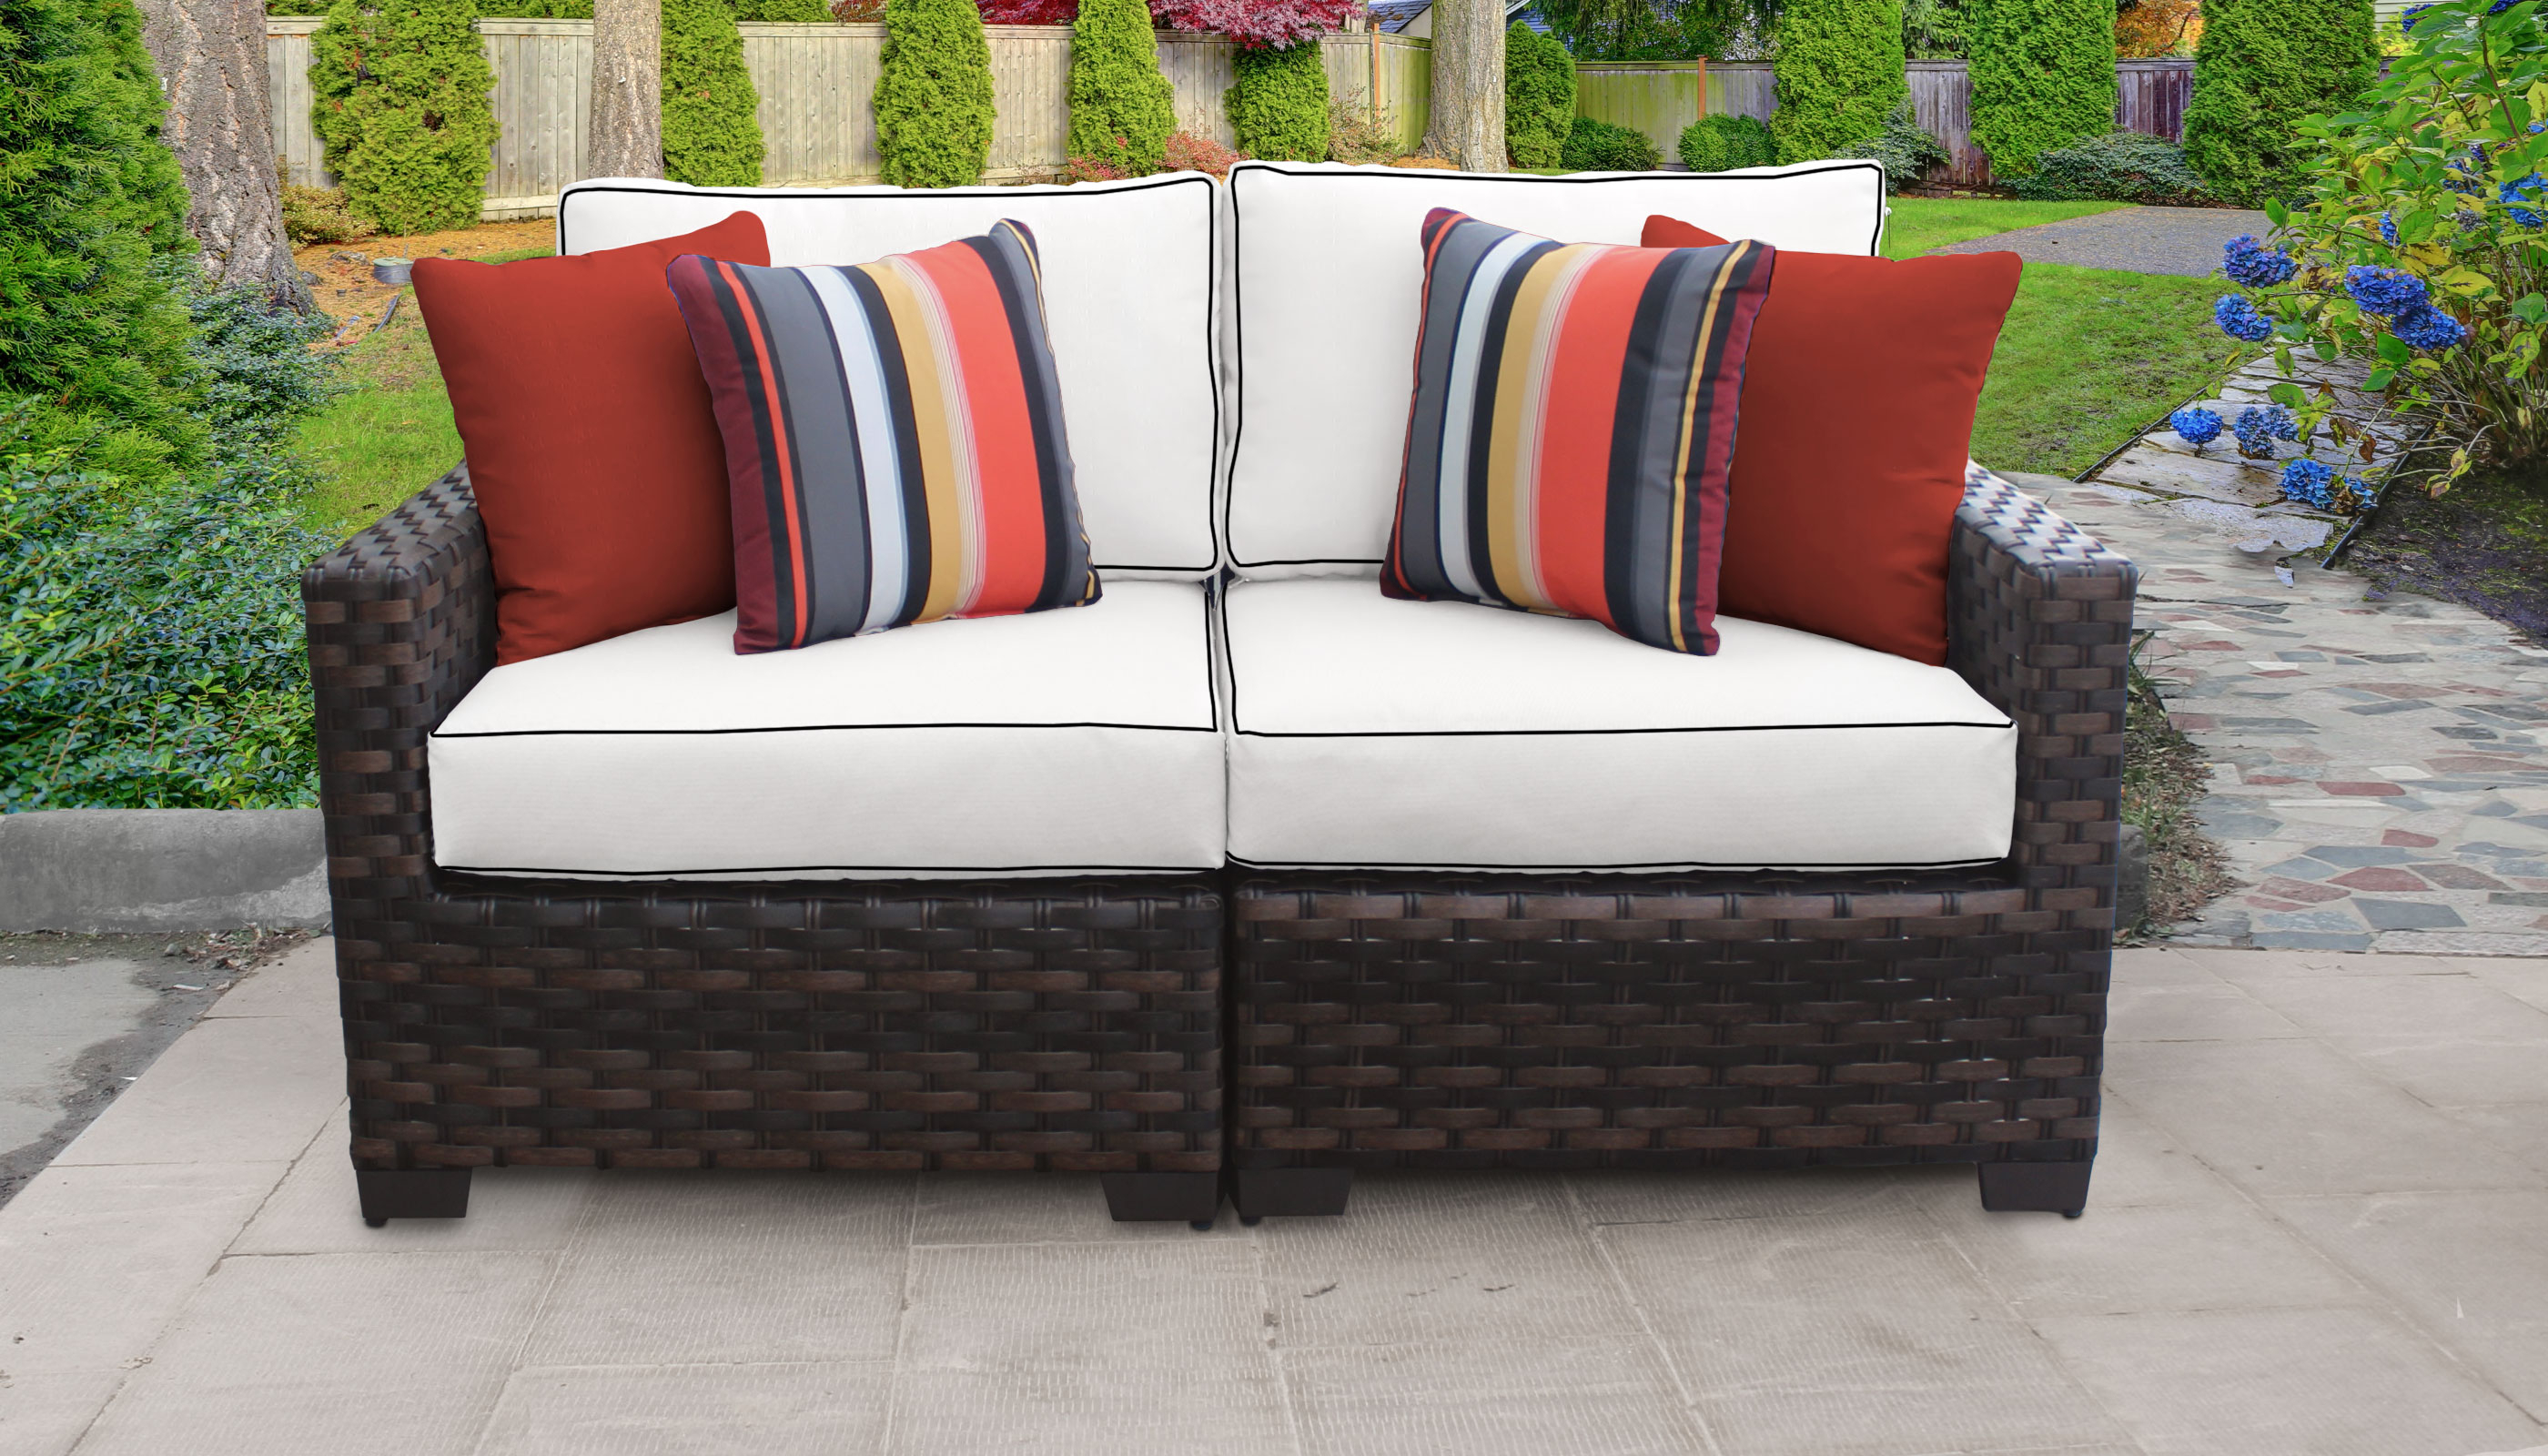 Latest River 2 Piece Outdoor Wicker Patio Furniture Set 02A For Oreland Patio Sofas With Cushions (View 6 of 20)